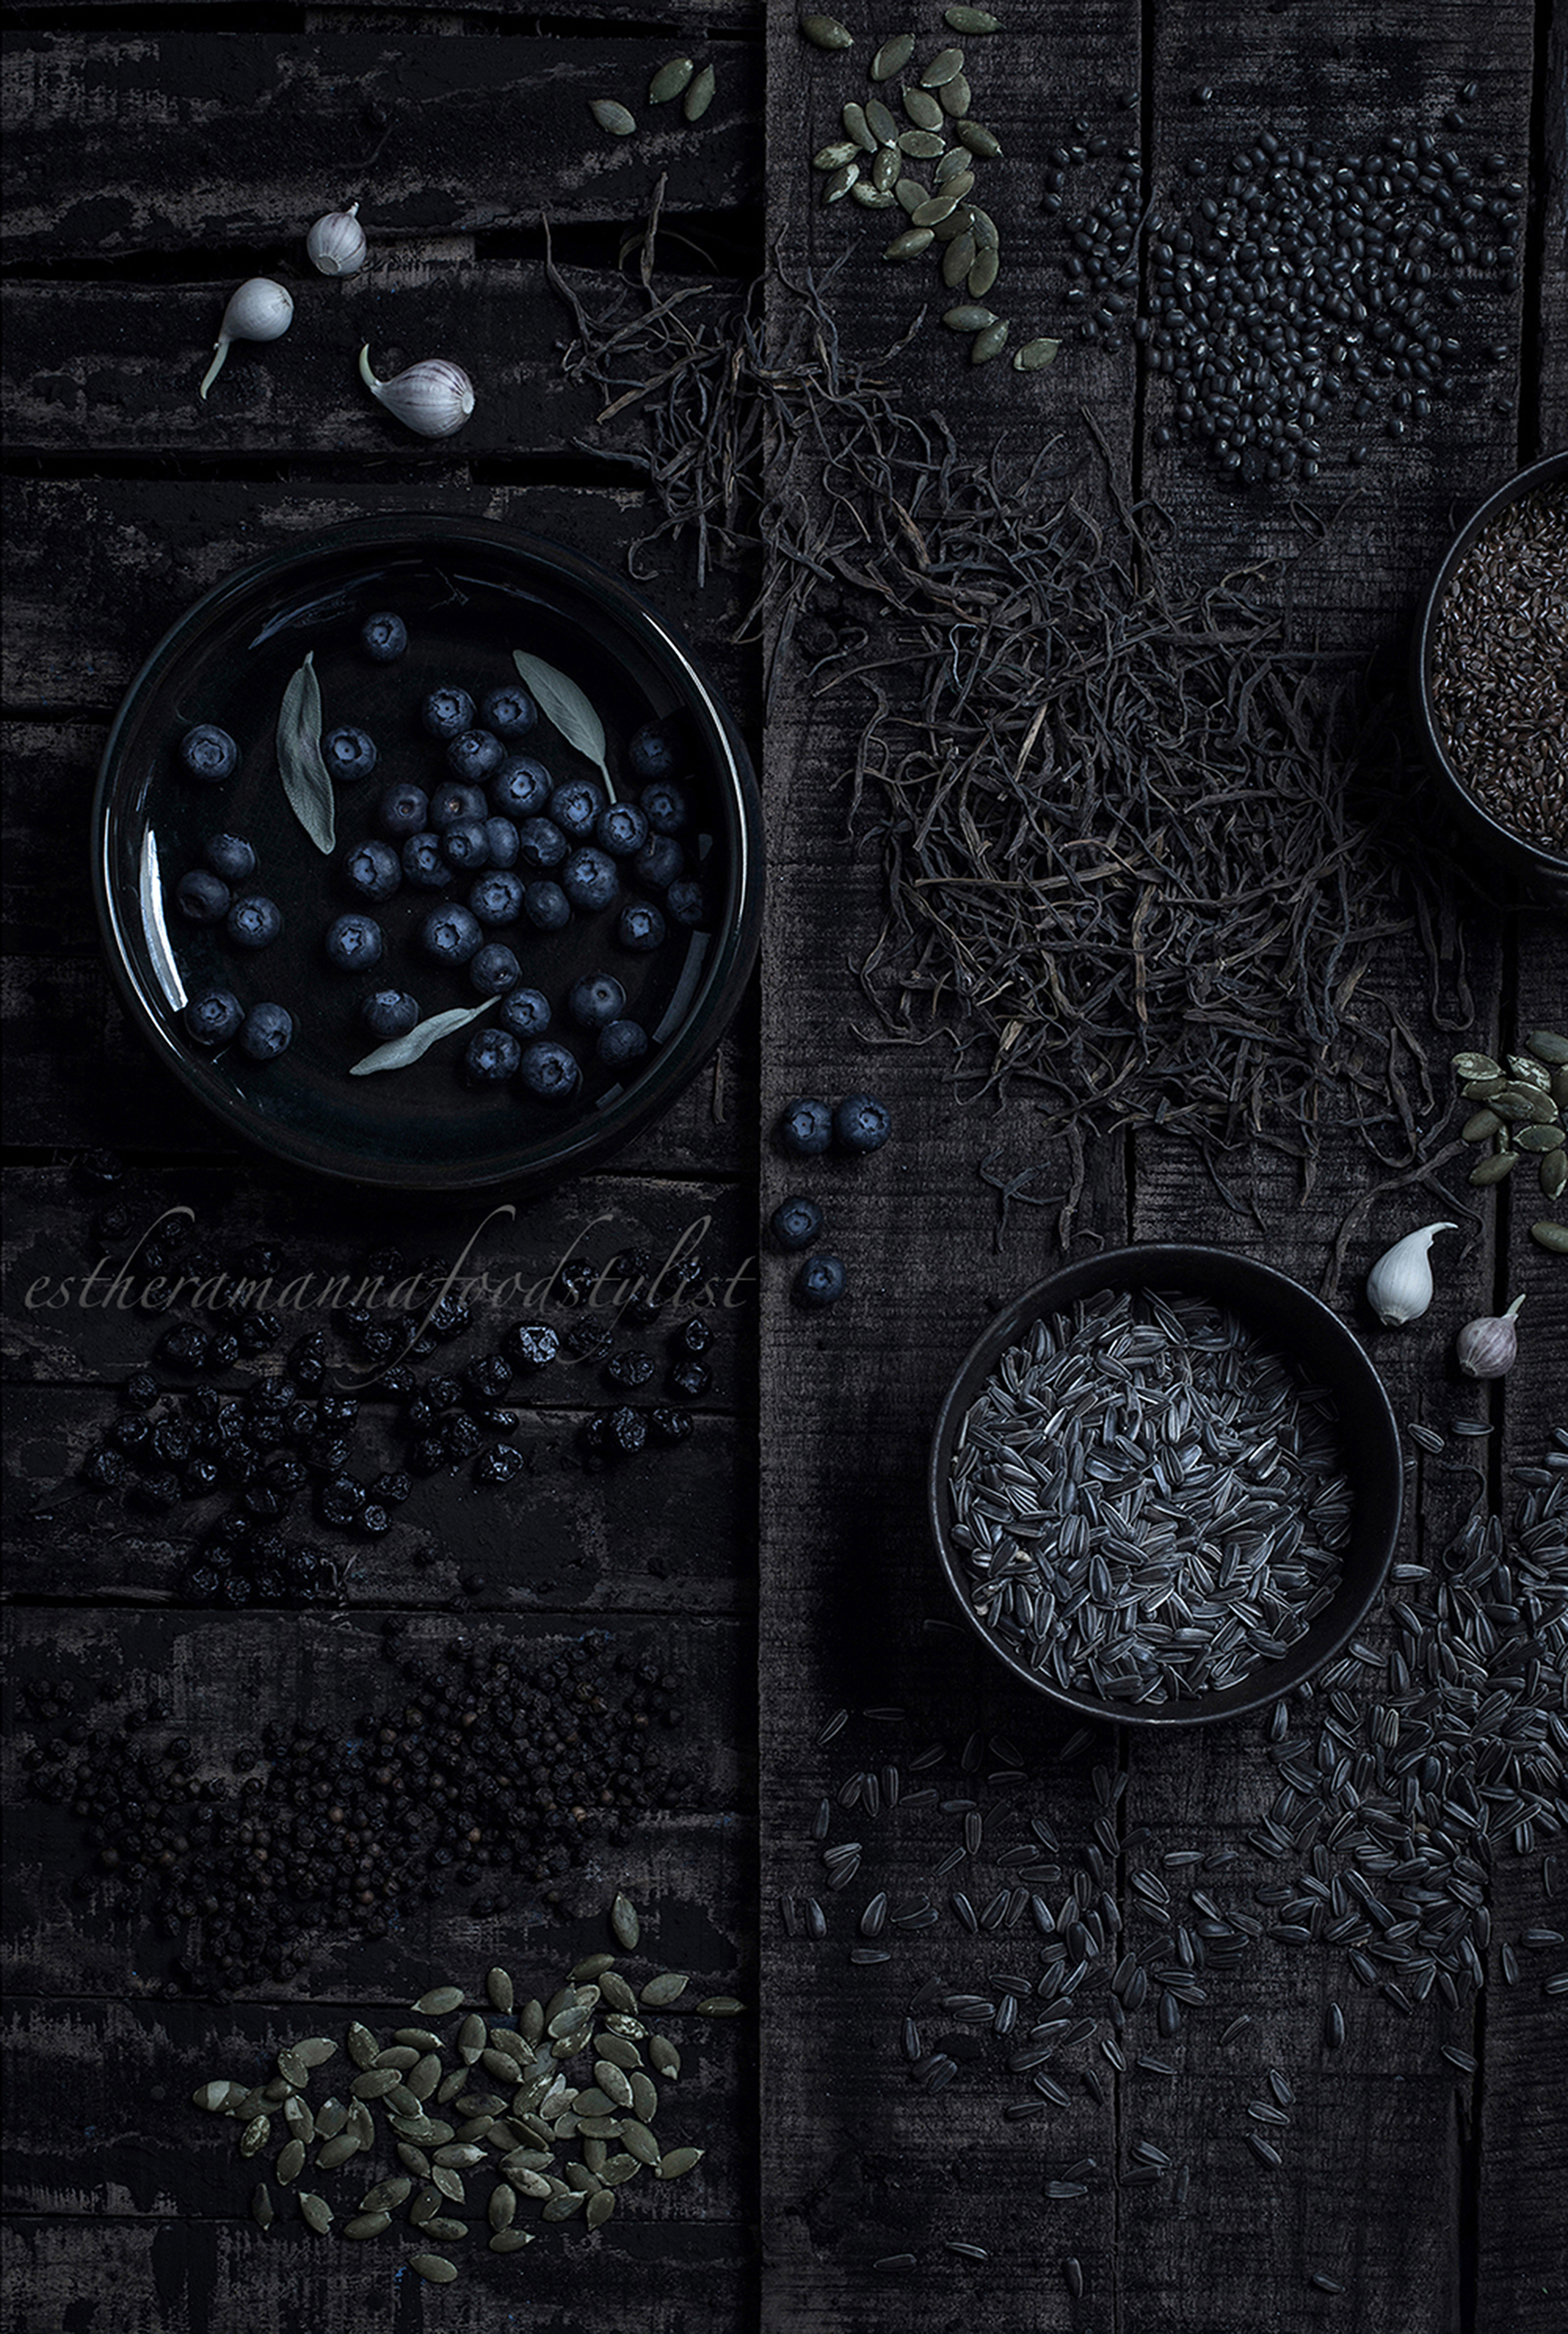 Chiaroscuro-A play with light and shadow in food.